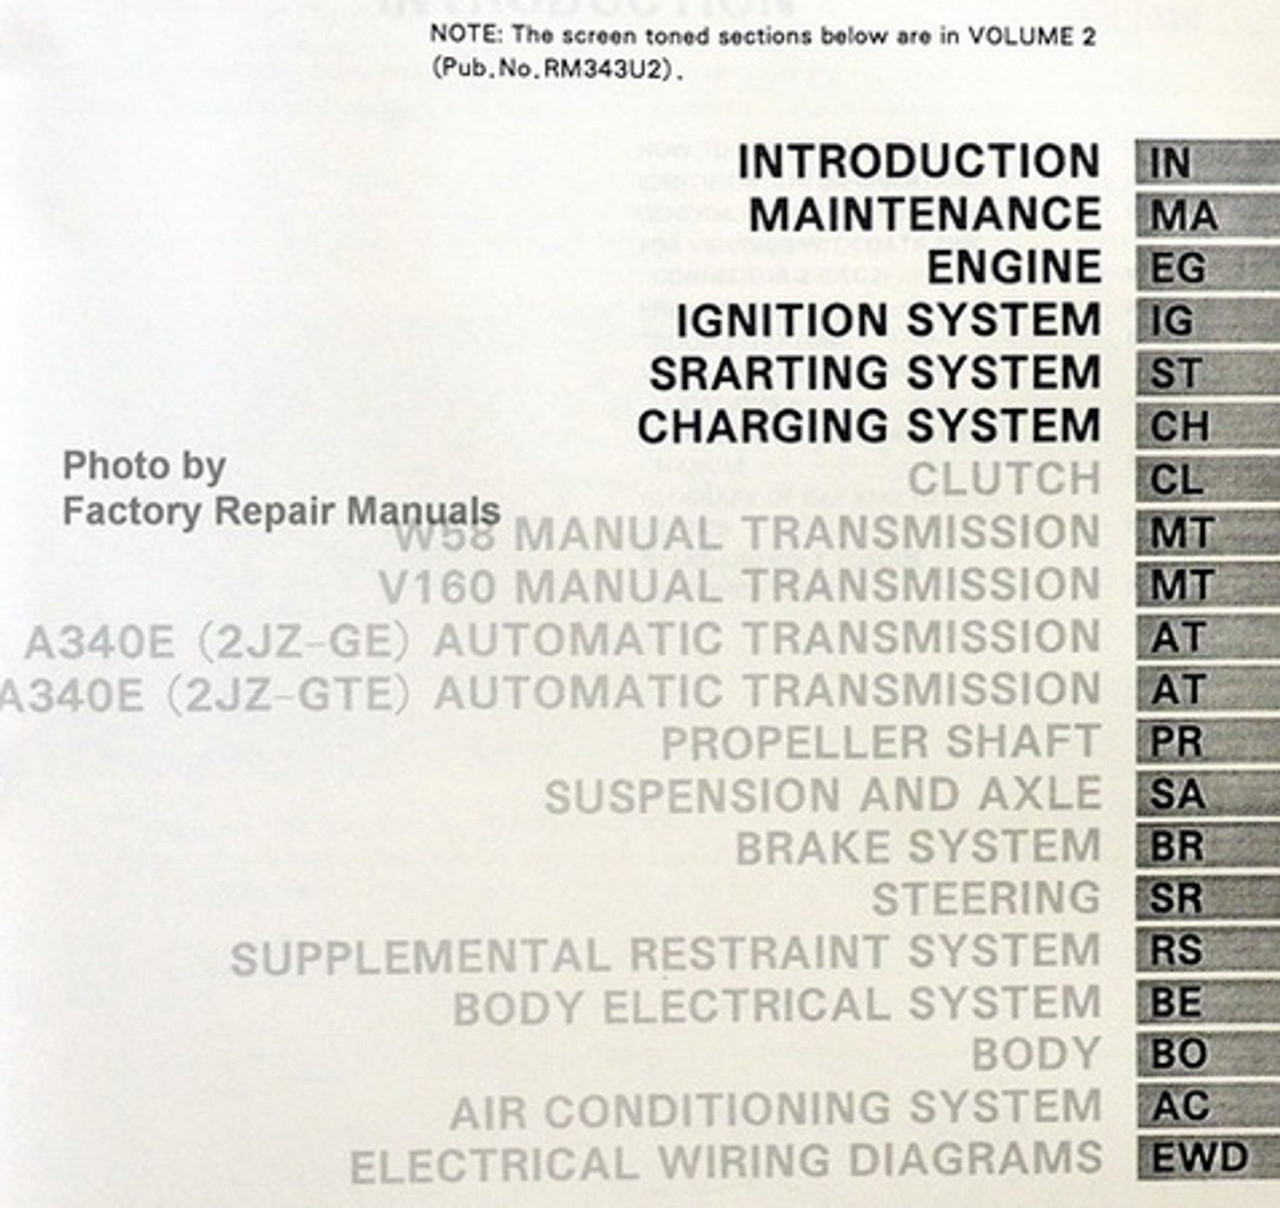 Ignition Wiring Diagram Jz Gte on